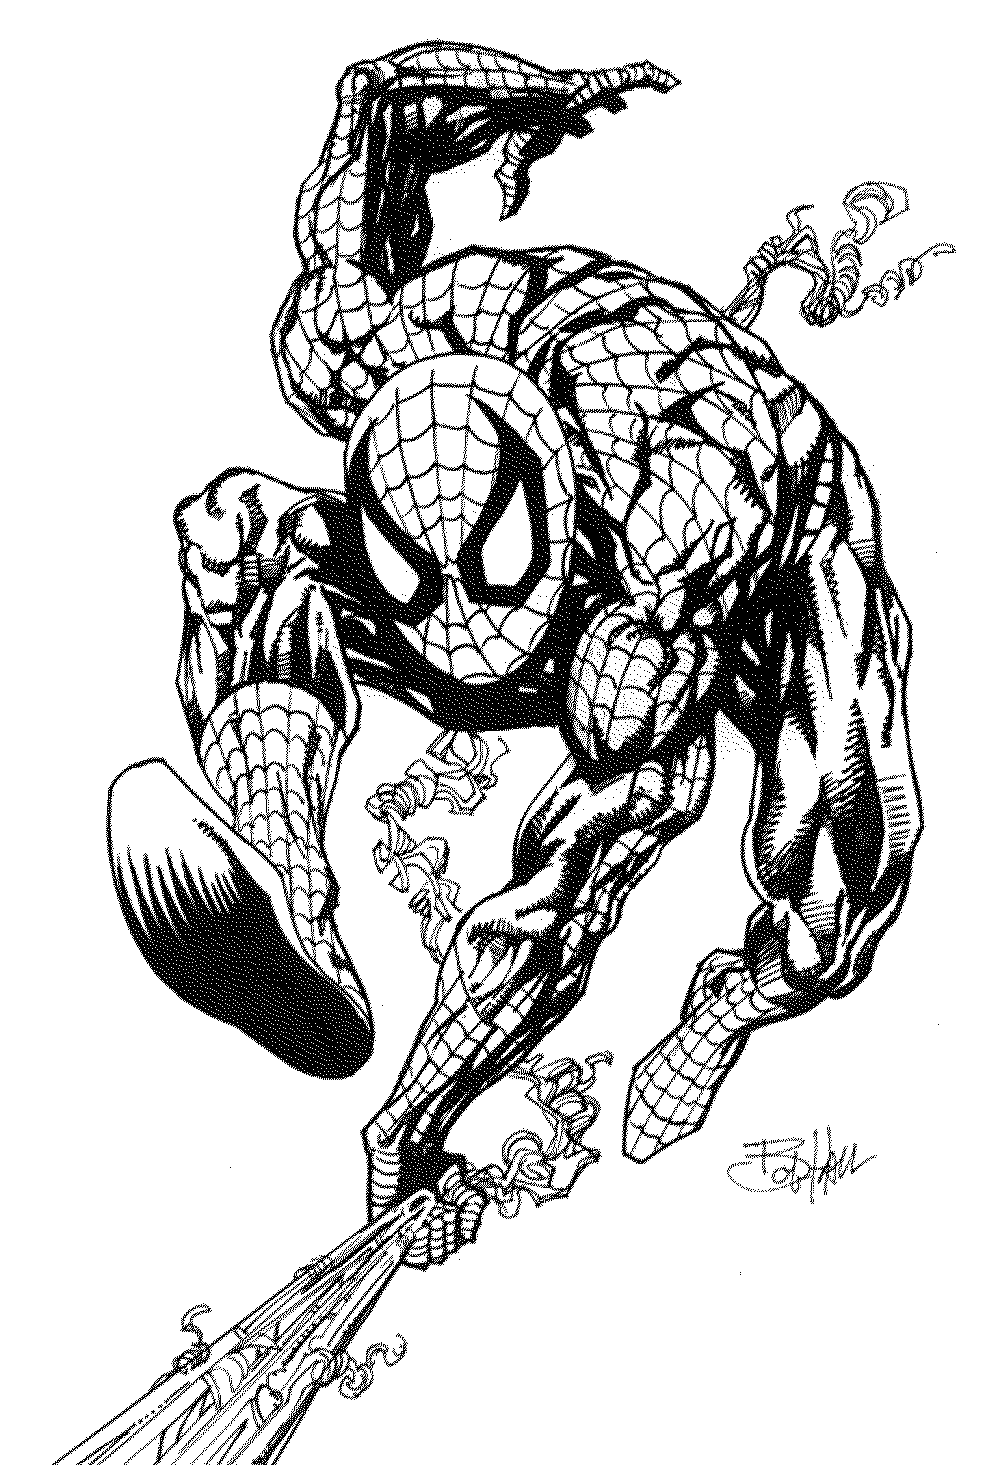 black spiderman coloring black spiderman coloring pictures high quality coloring spiderman black coloring